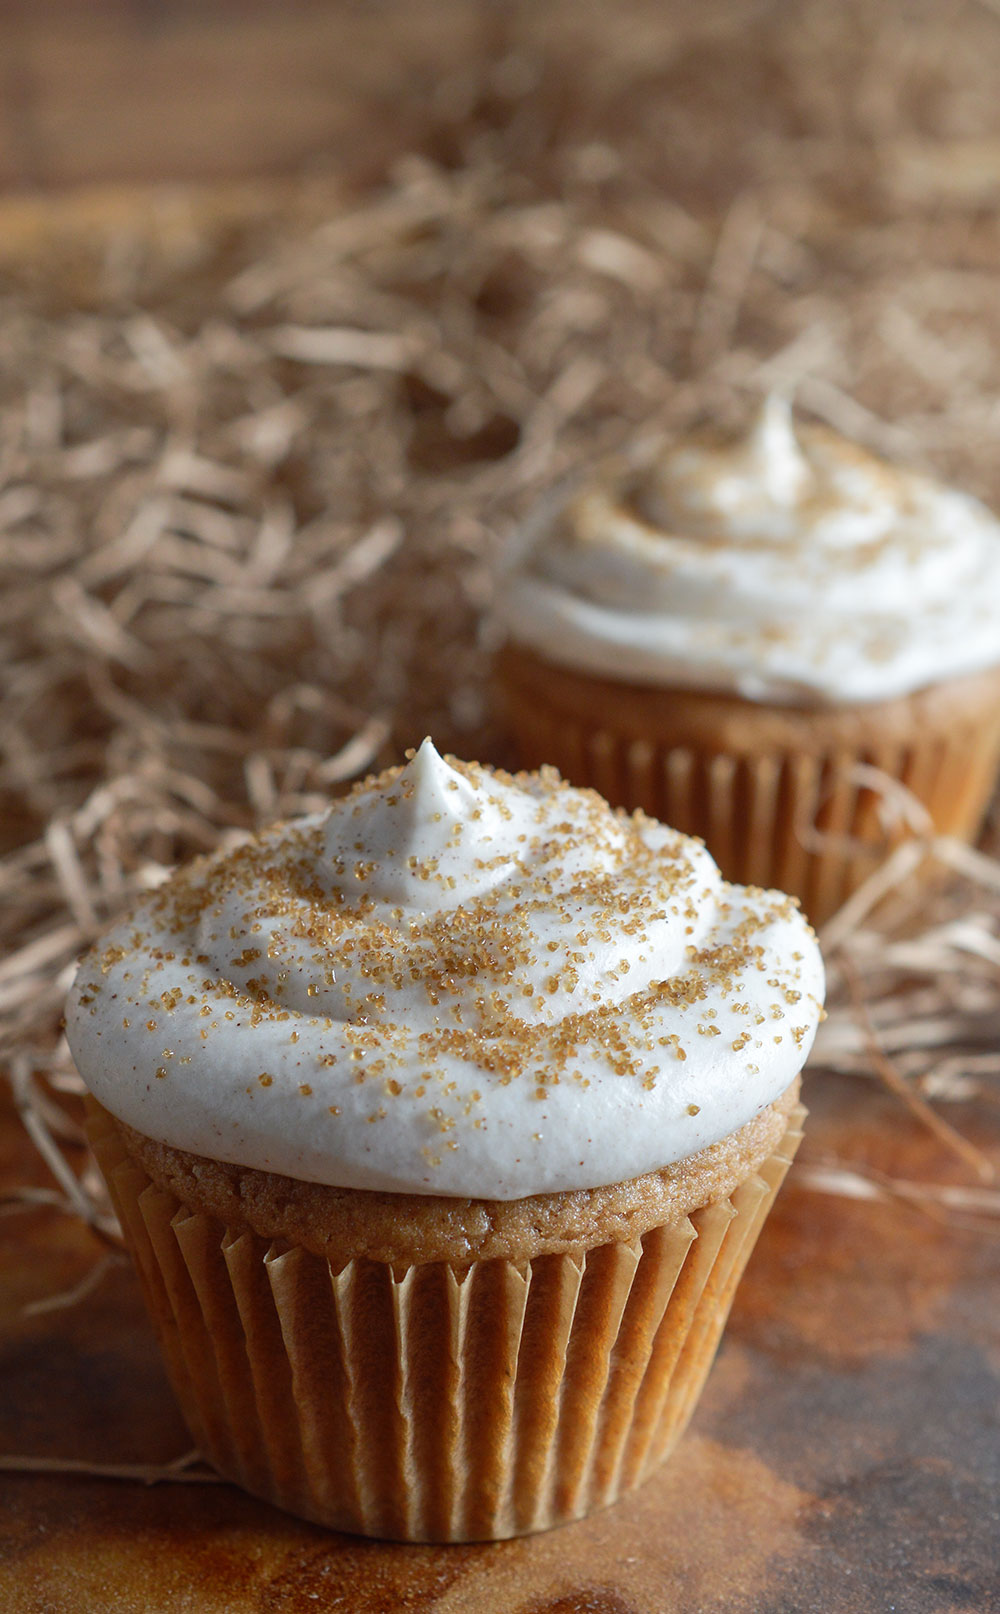 http://wonkywonderful.com/spiced-cupcakes-with-cinnamon-cream-cheese-frosting/